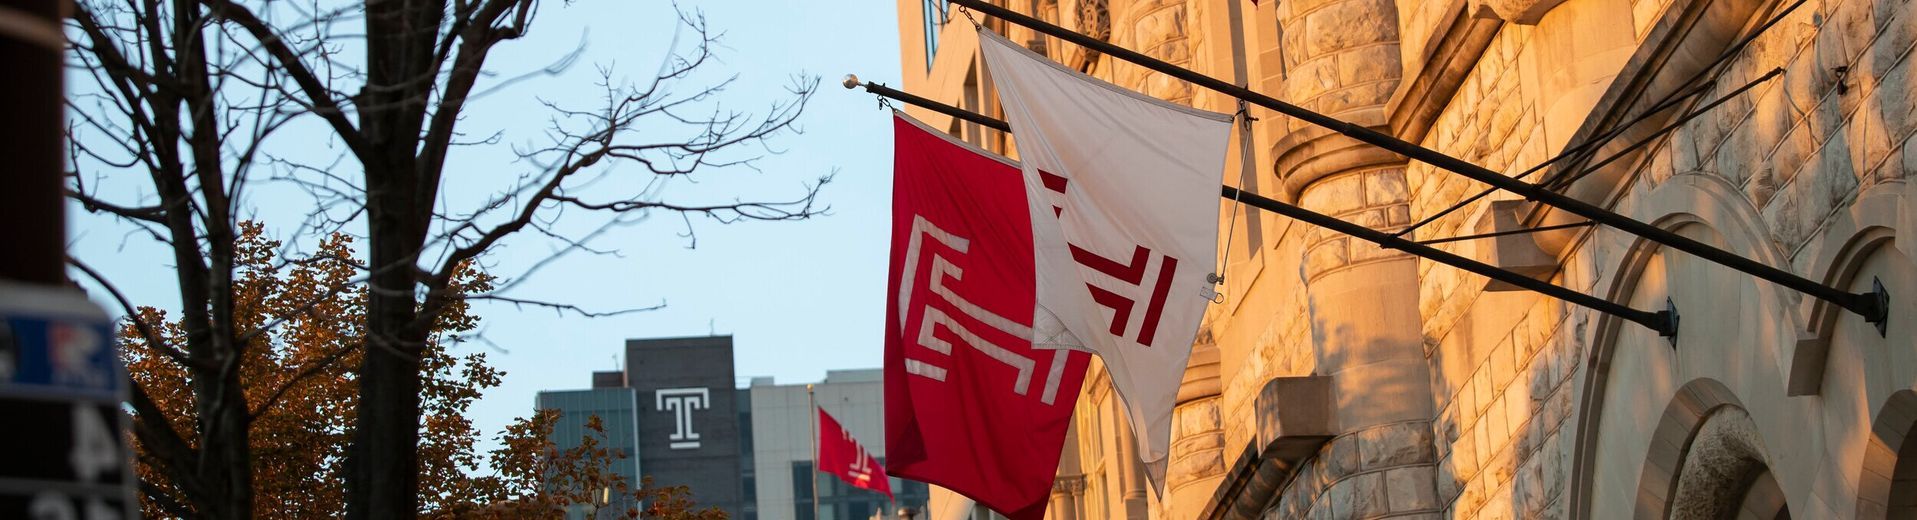 Flags on Temple University's campus